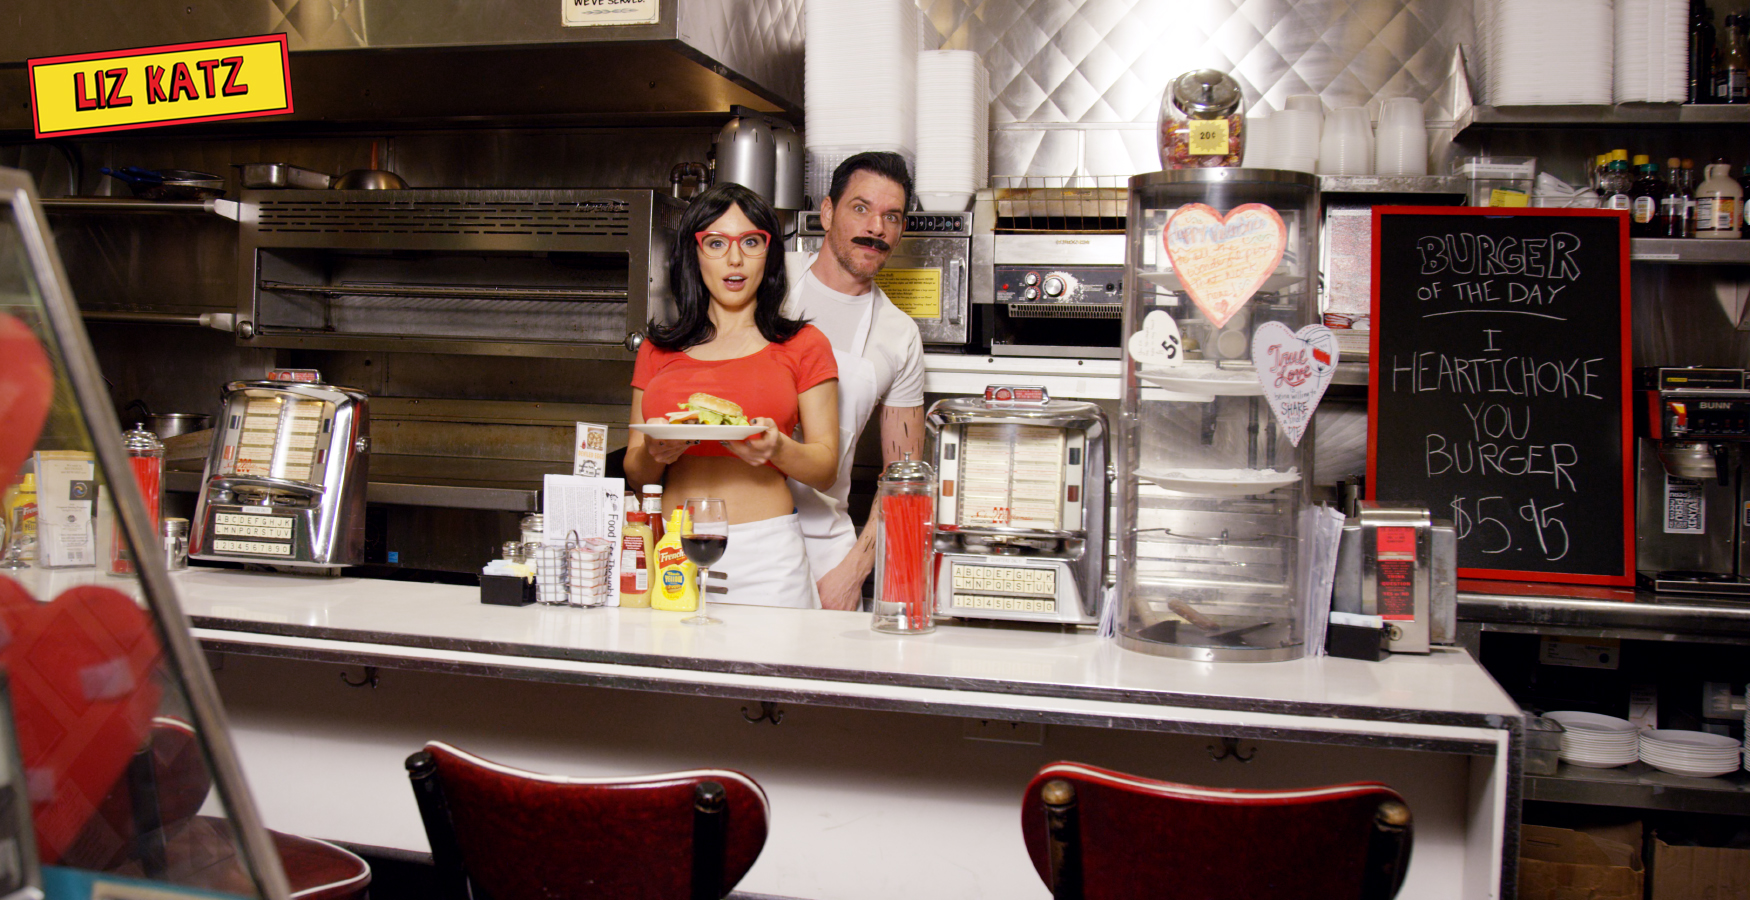 Bob's Burgers Cosplay with Liz Katz and Linda Belcher and Sam Macaroni as Bob